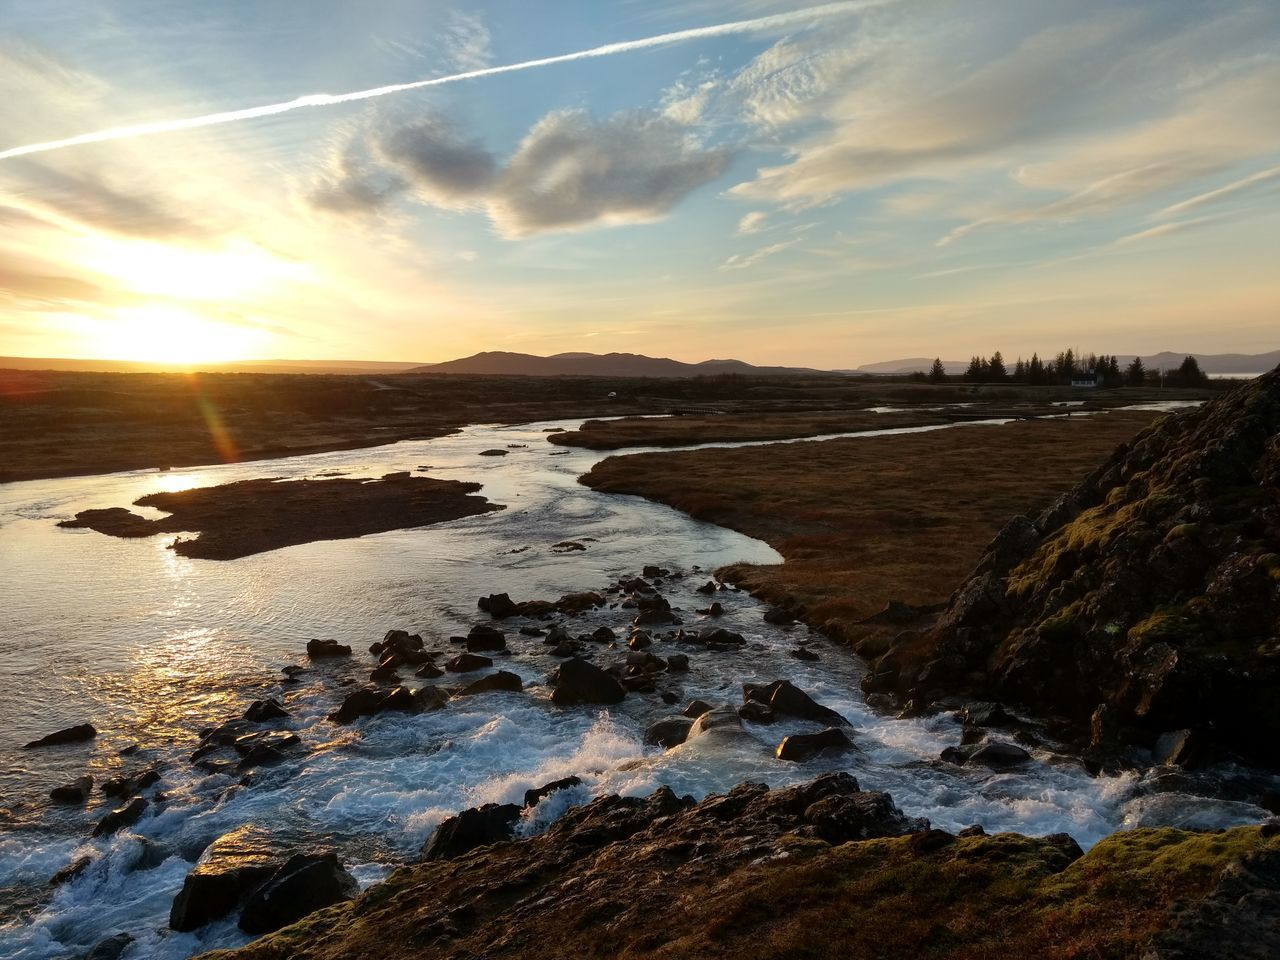 Beauty In Nature Iceland Landscape Nature No People Outdoors Sky Thingvellir National Park Water Þingvellir National Park